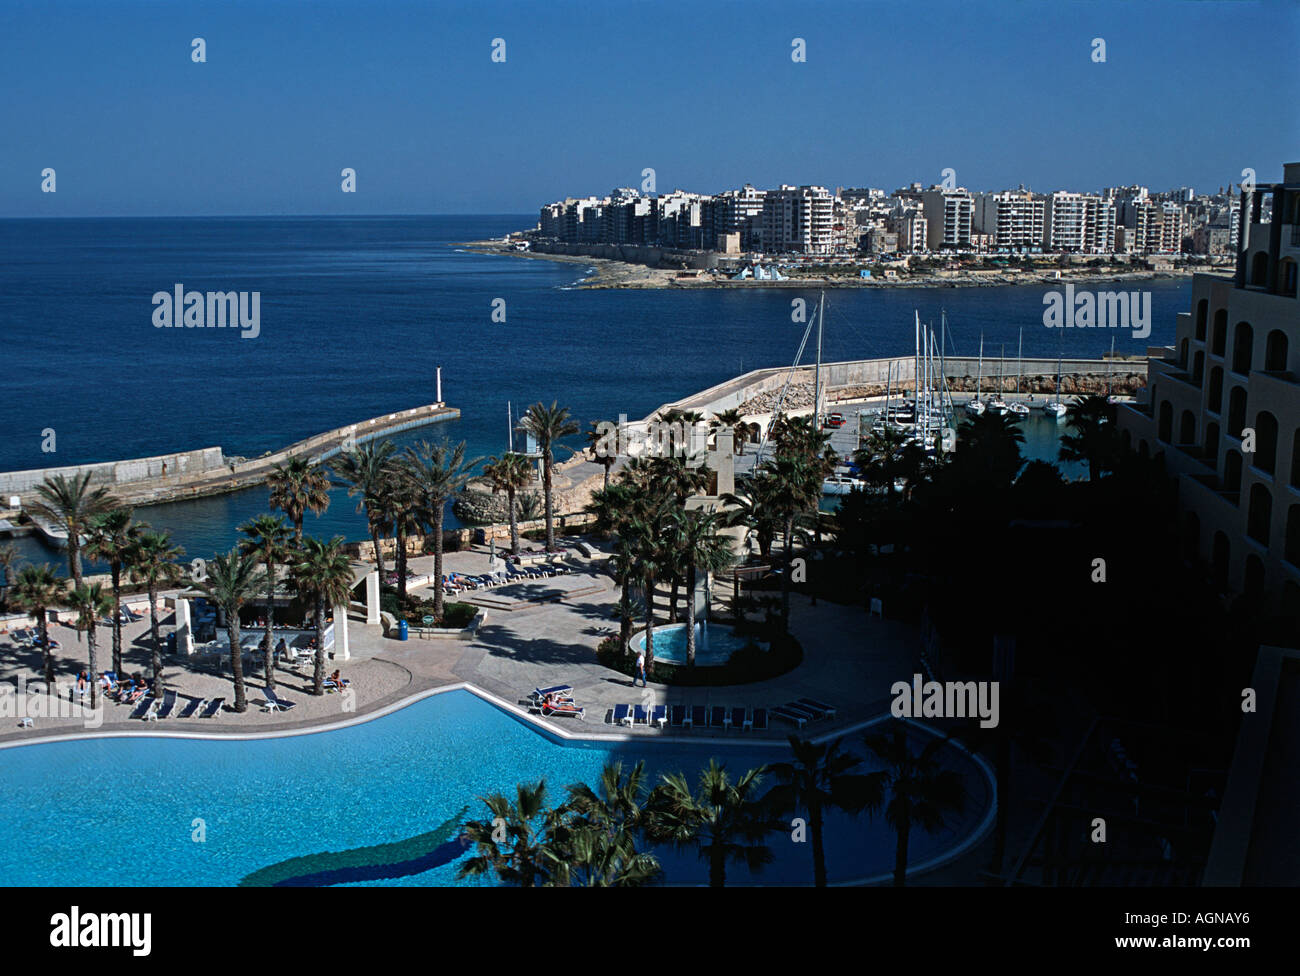 The Hilton Hotel Portomaso St Julian s Malta With town and sea beyond the swimming pool MALTA - Stock Image